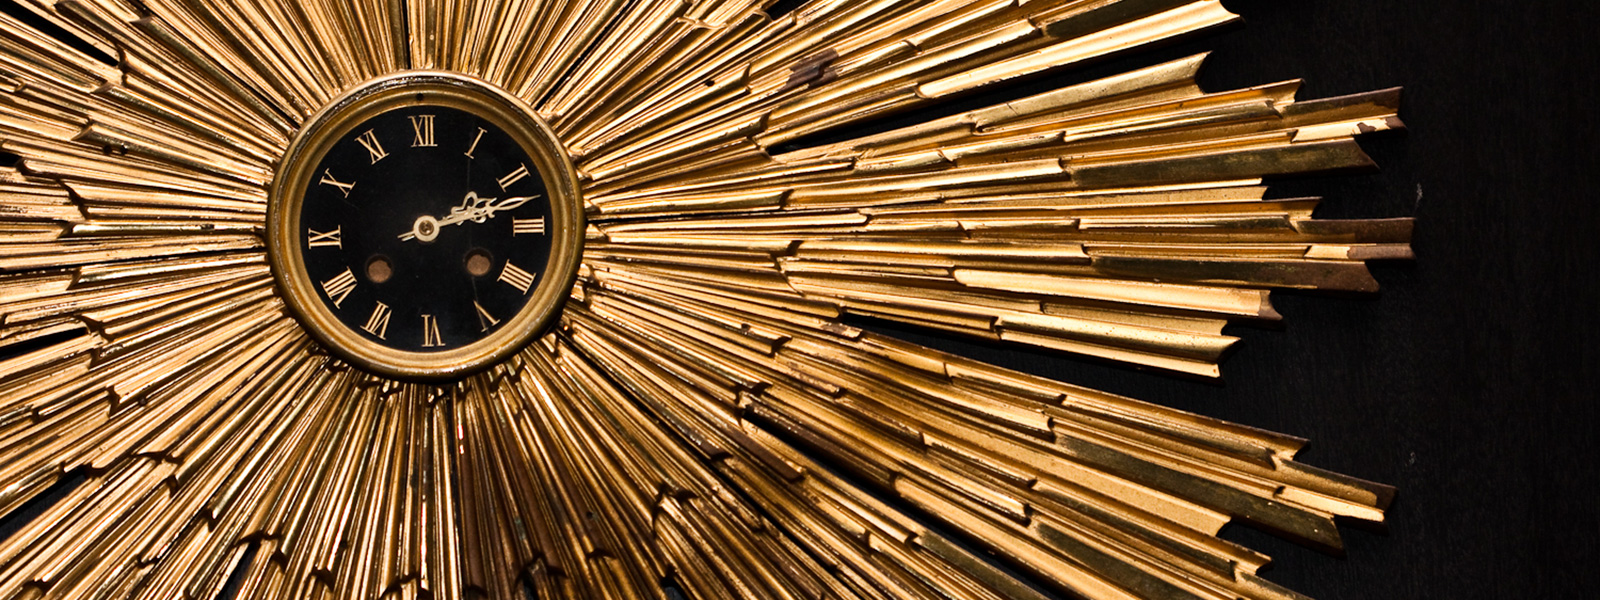 round gold clock that is featured in our hotel.